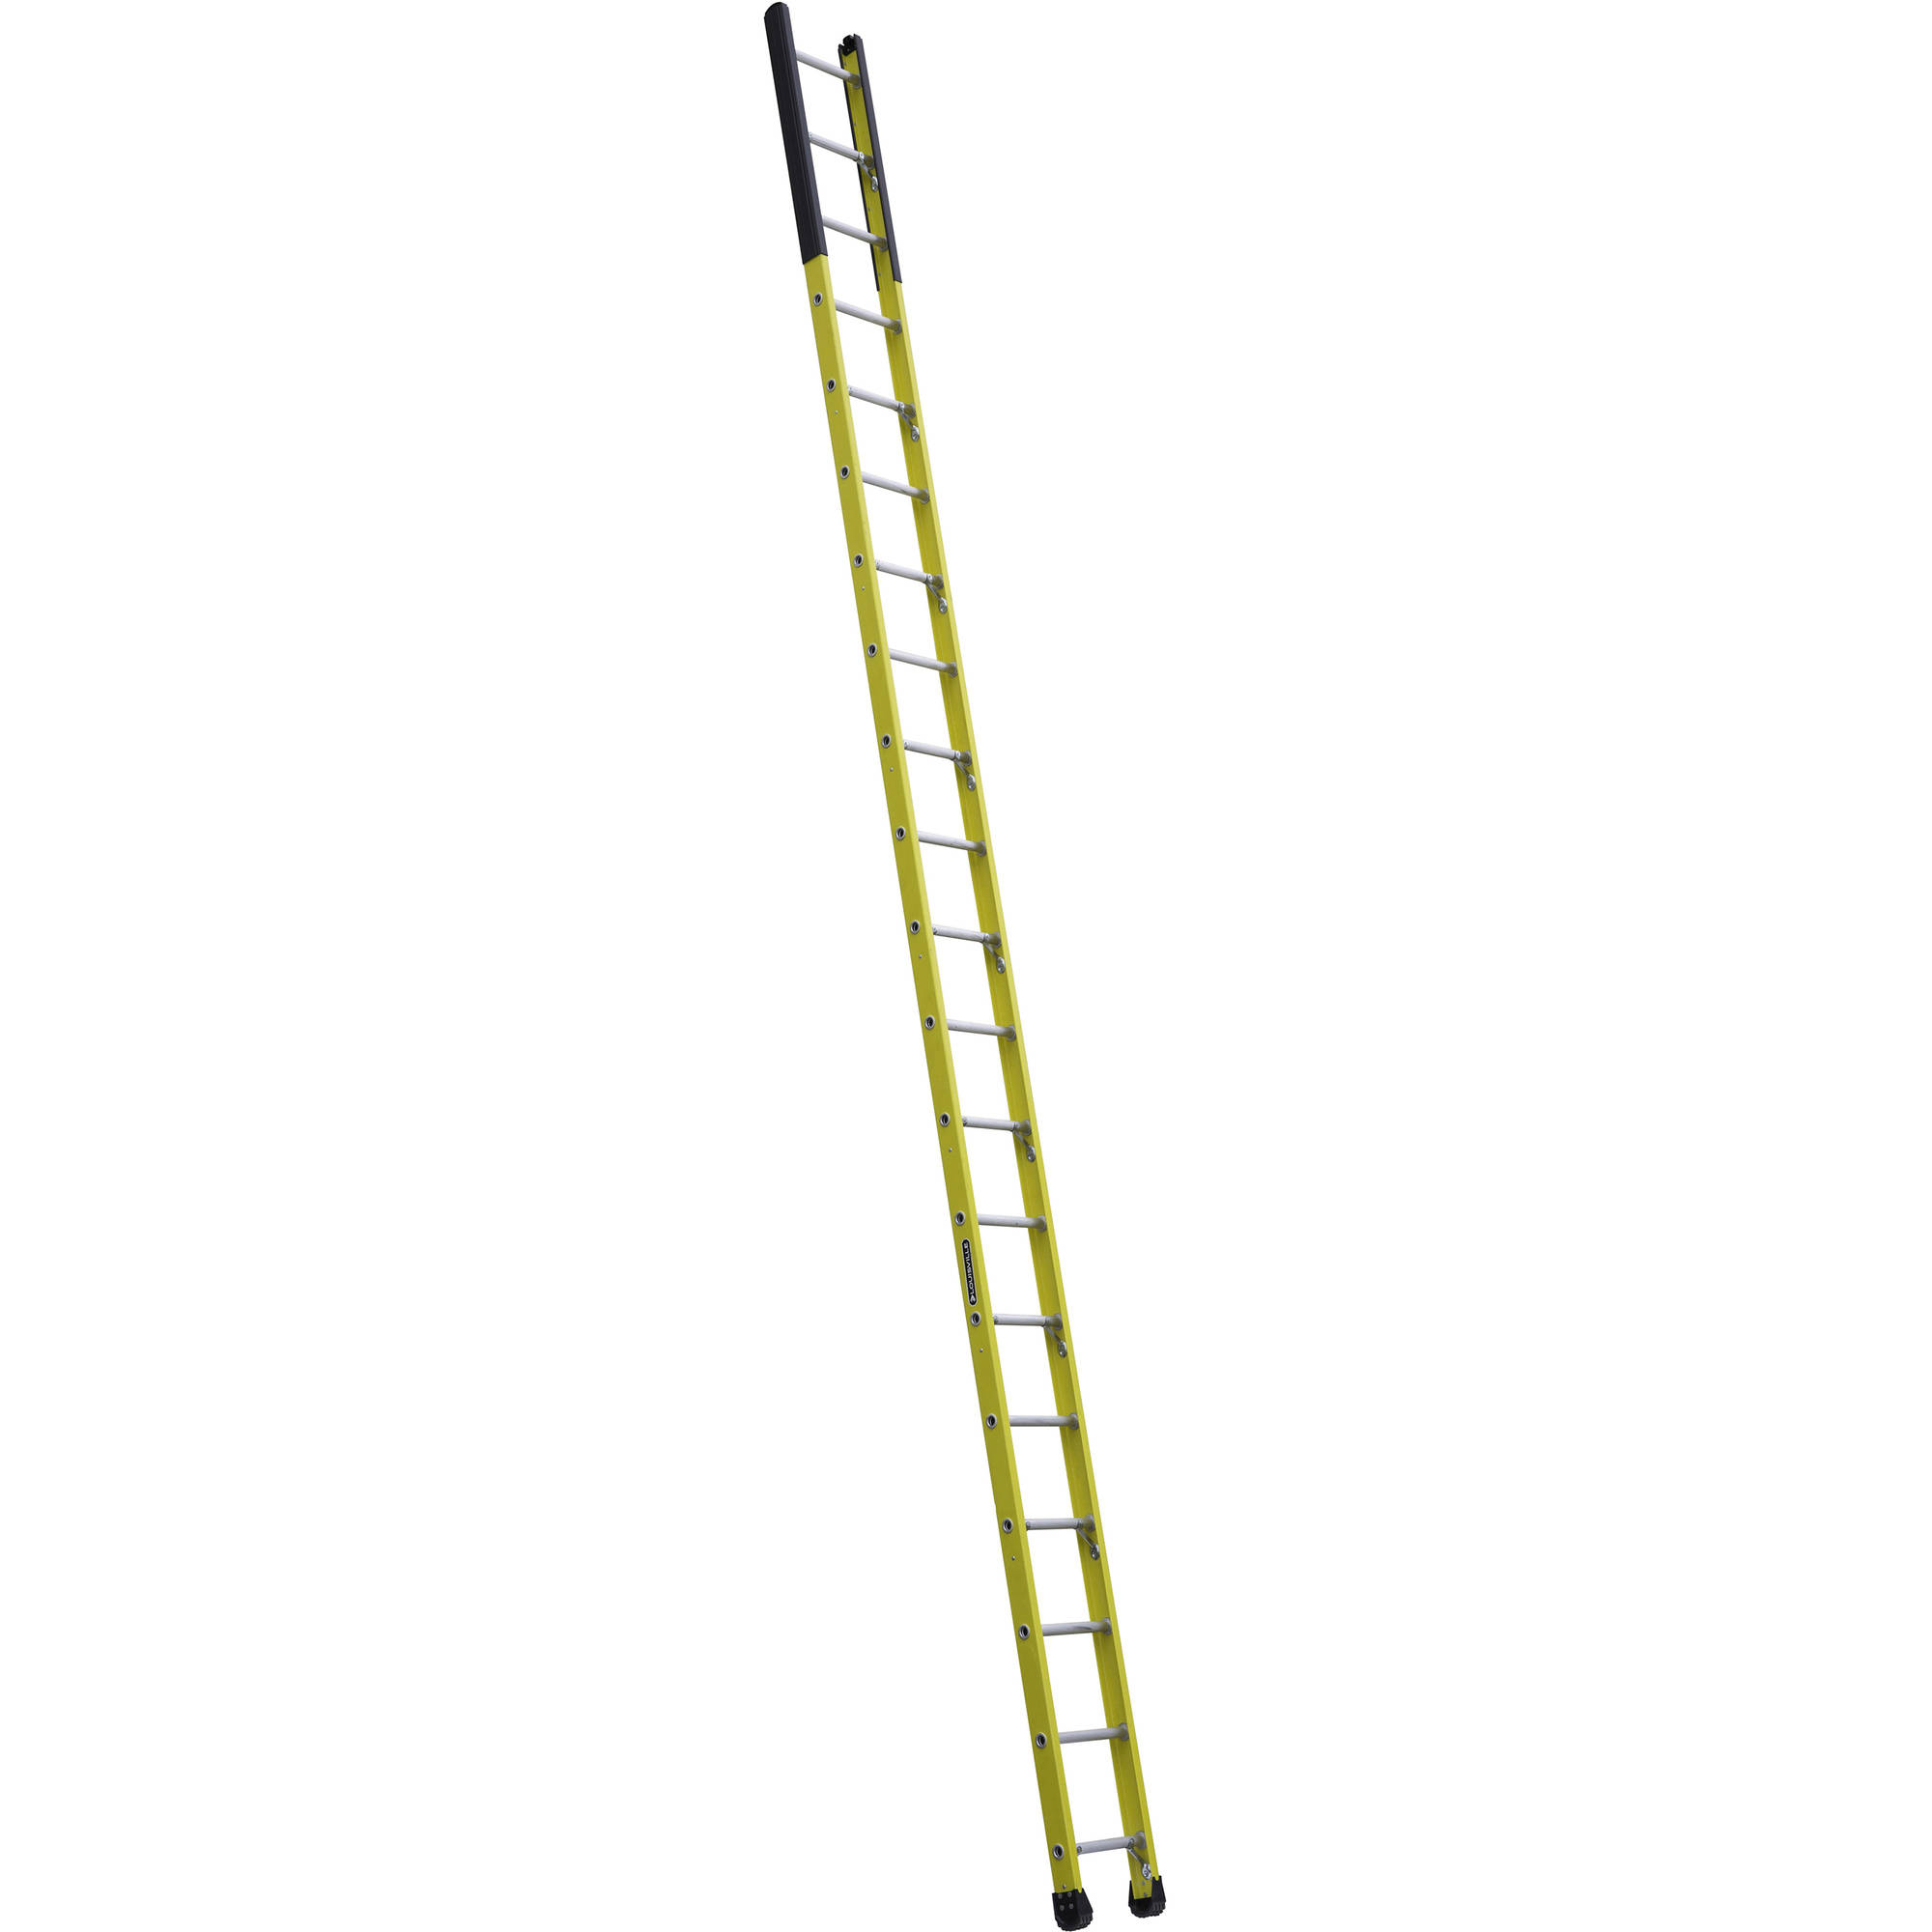 Louisville Ladder Fe8920 20 Ft Fiberglass Manhole Ladder